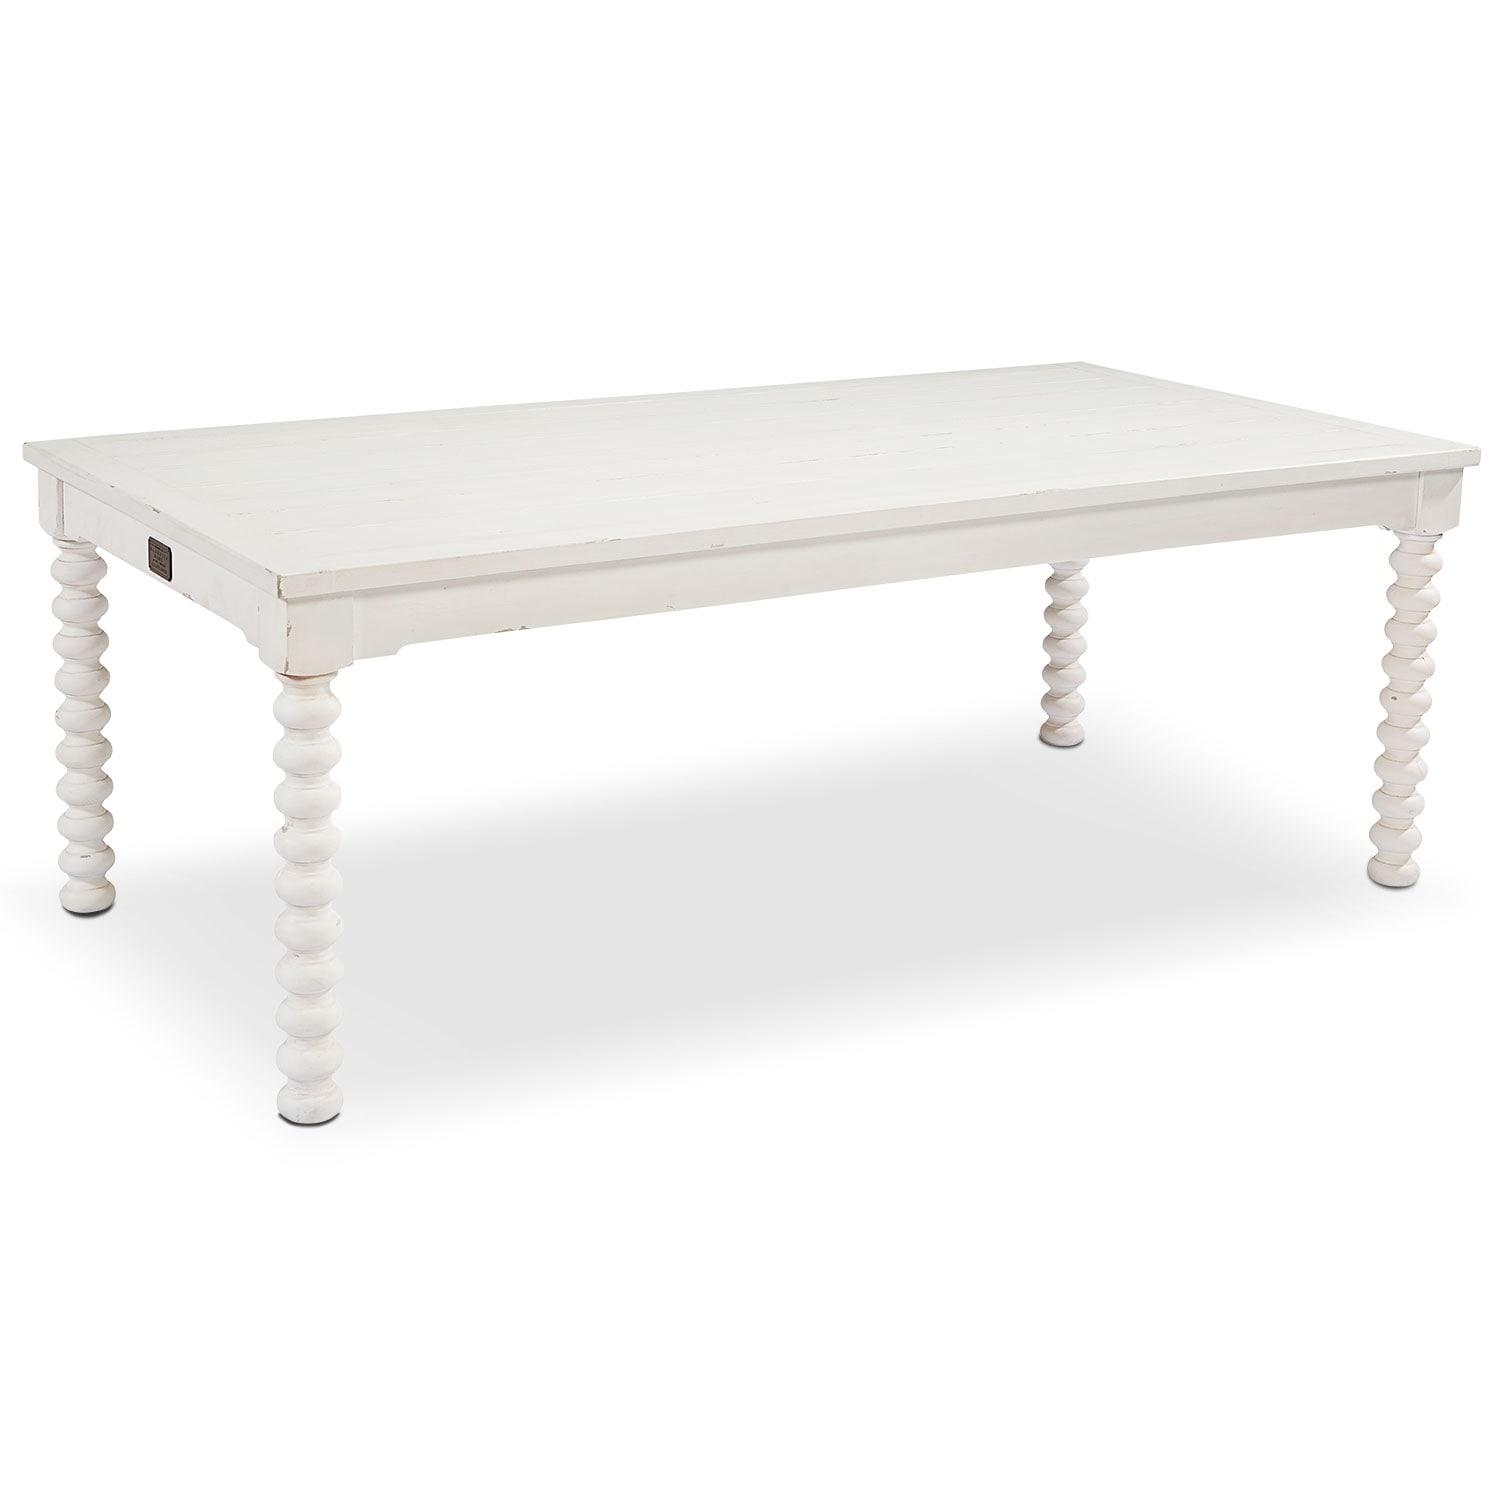 6' Spool Leg Dining Table - White